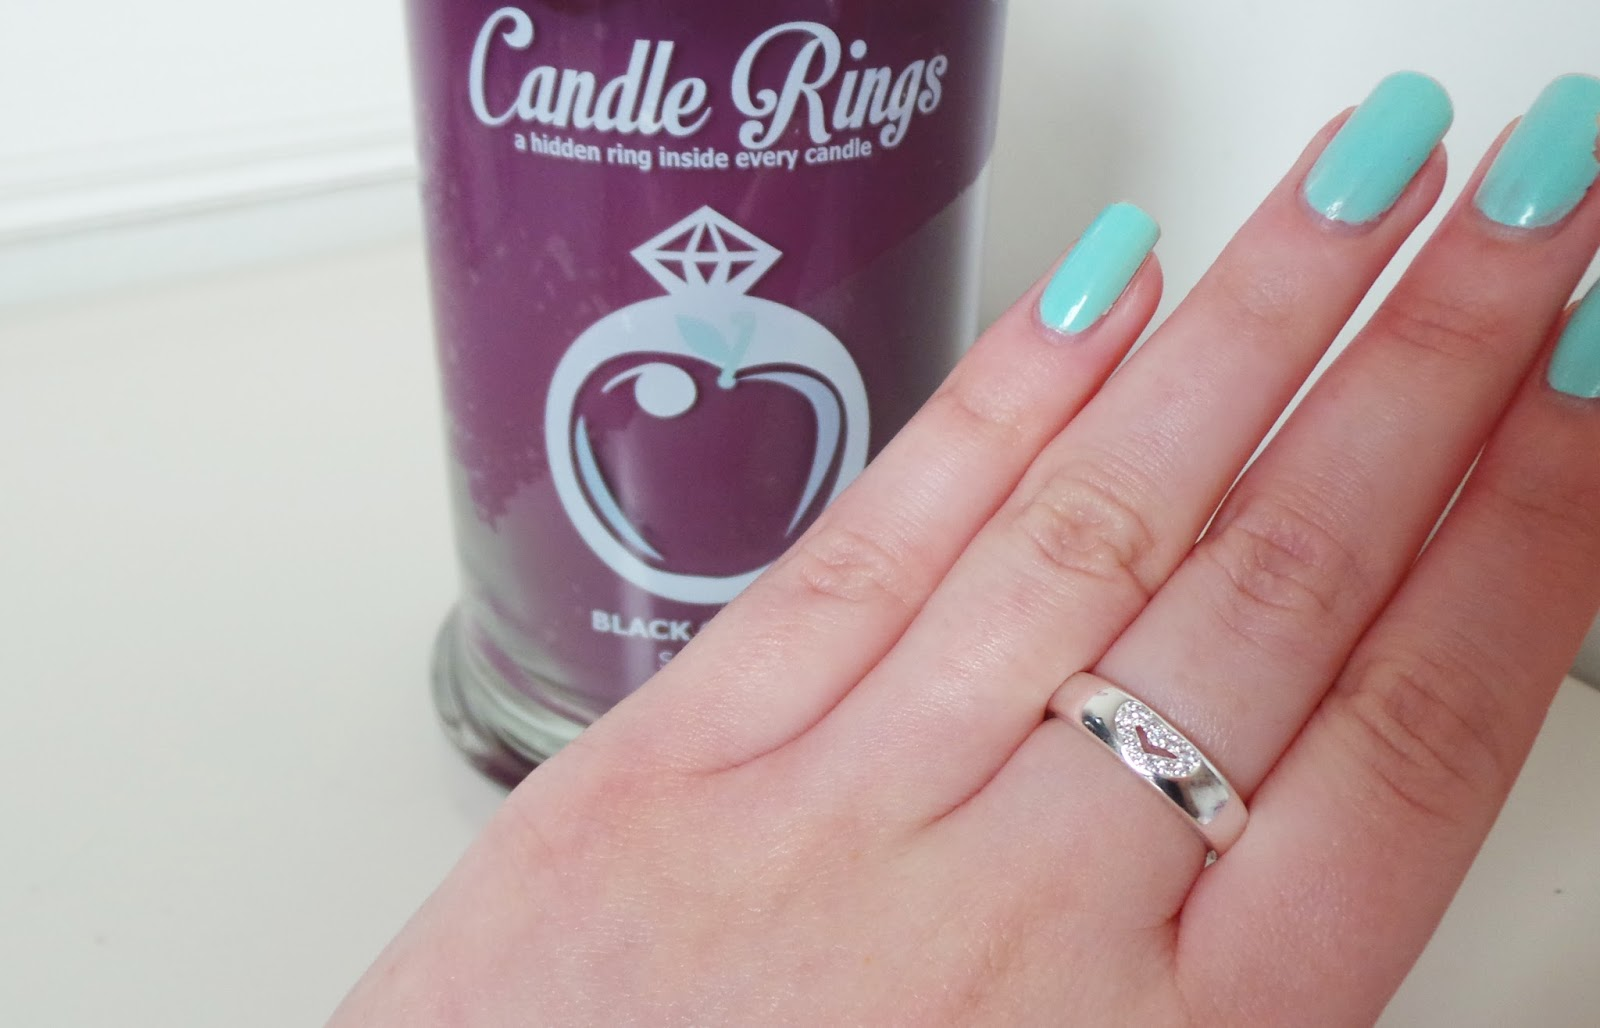 home candle, scented candle, candlerings.co.uk, candle ring, candlerings review, candle ring review, candlerings, jewel candle, ring in a candle, scented candle review, black cherry candle, pure soy candle, handmade soy candles,